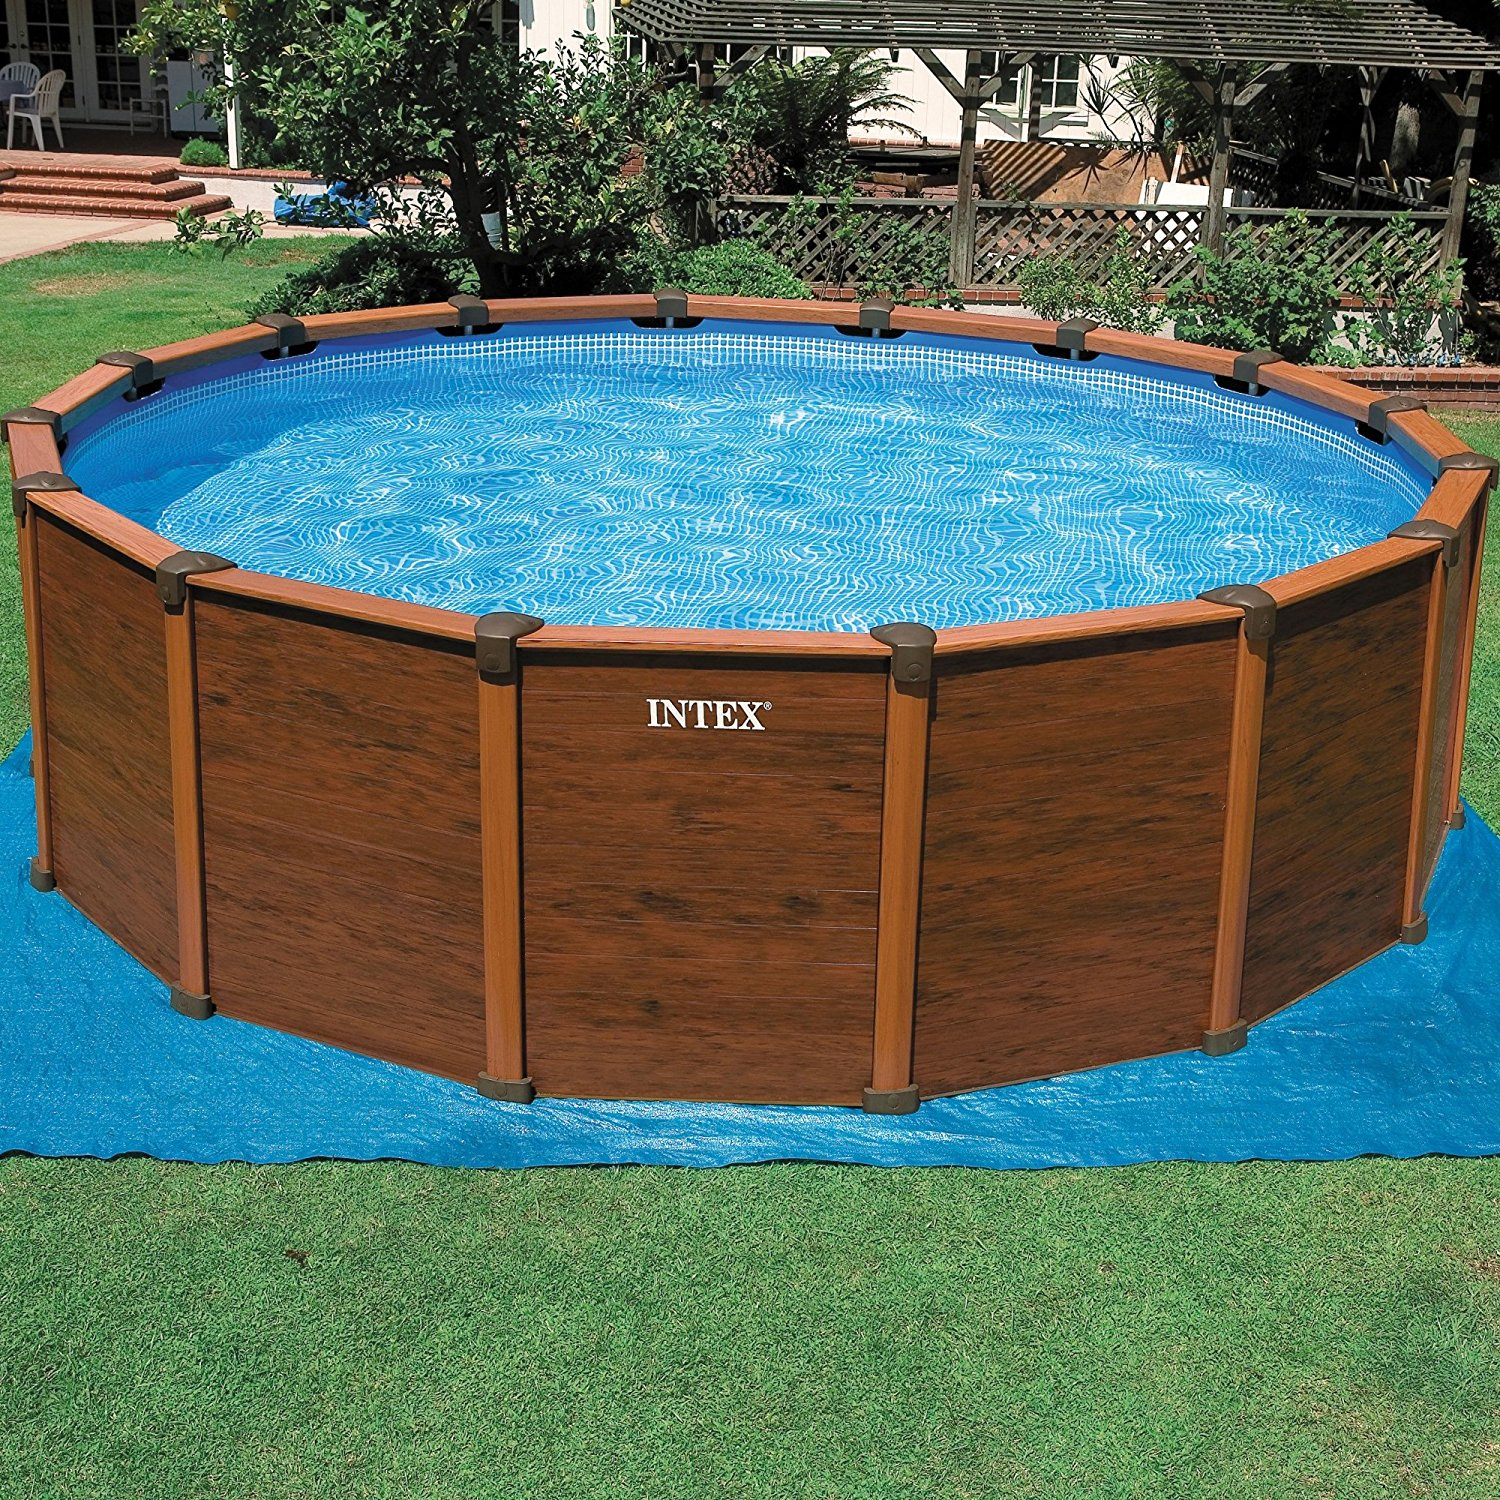 piscina fuori terra intex sequoia spirit rotonda 569x135